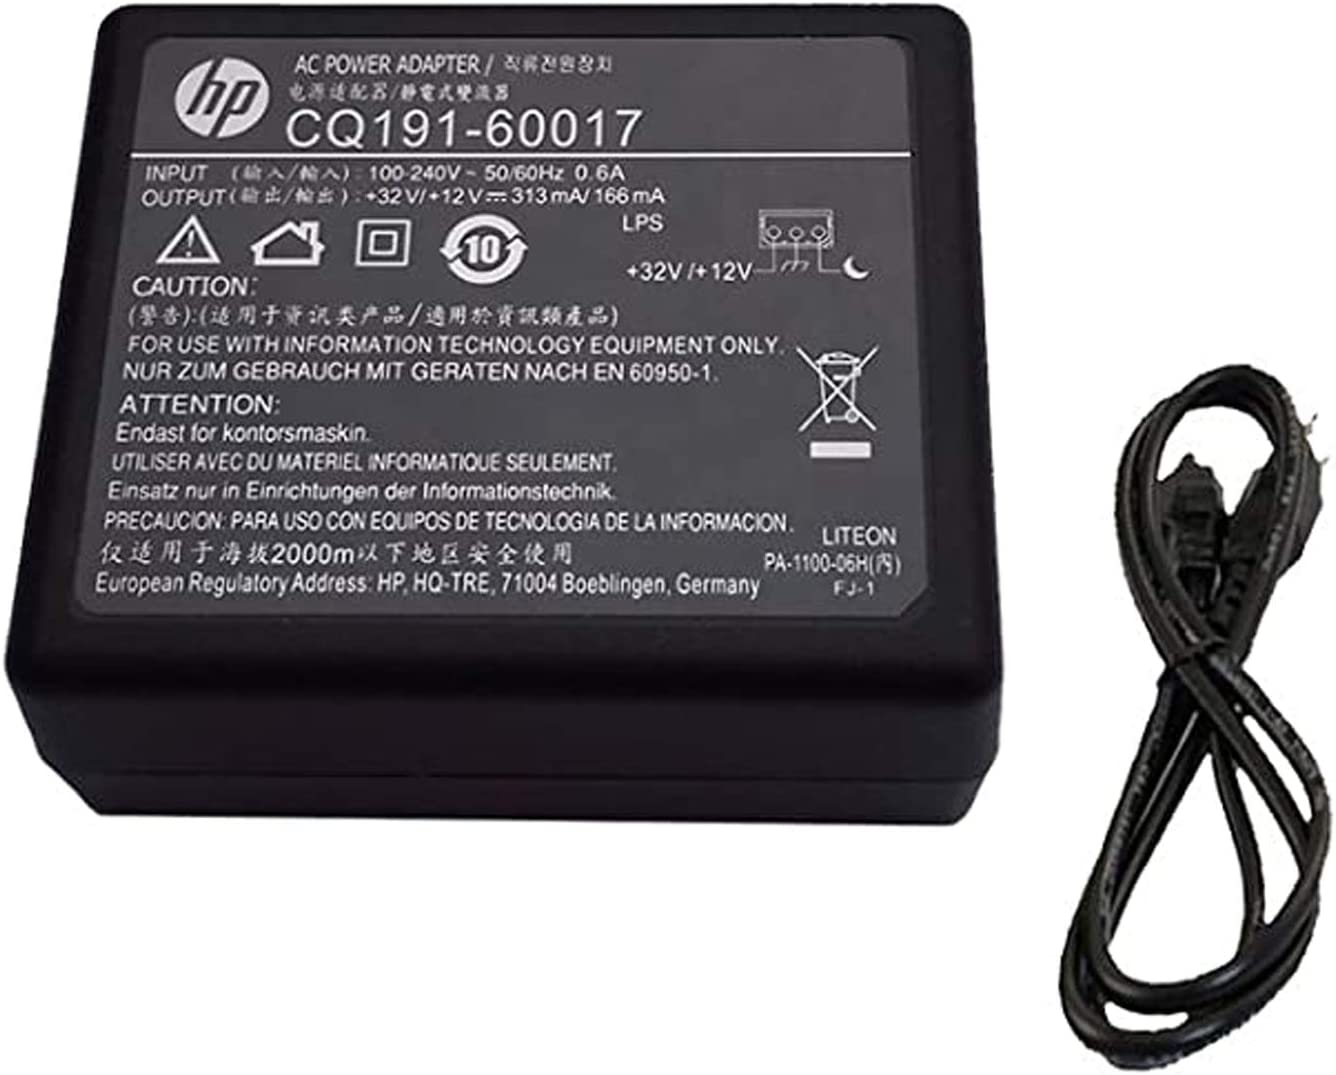 UpBright AC Adapter Compatible with Genuine HP PhotoSmart 5510 5512 5514 5515 5520 5521 5522 5524 5525 6510 6512 6515 6520 6525 5540 5541 5542 5544 5545 5546 5640 5642 5643 5644 5646 5660 5661 Printer